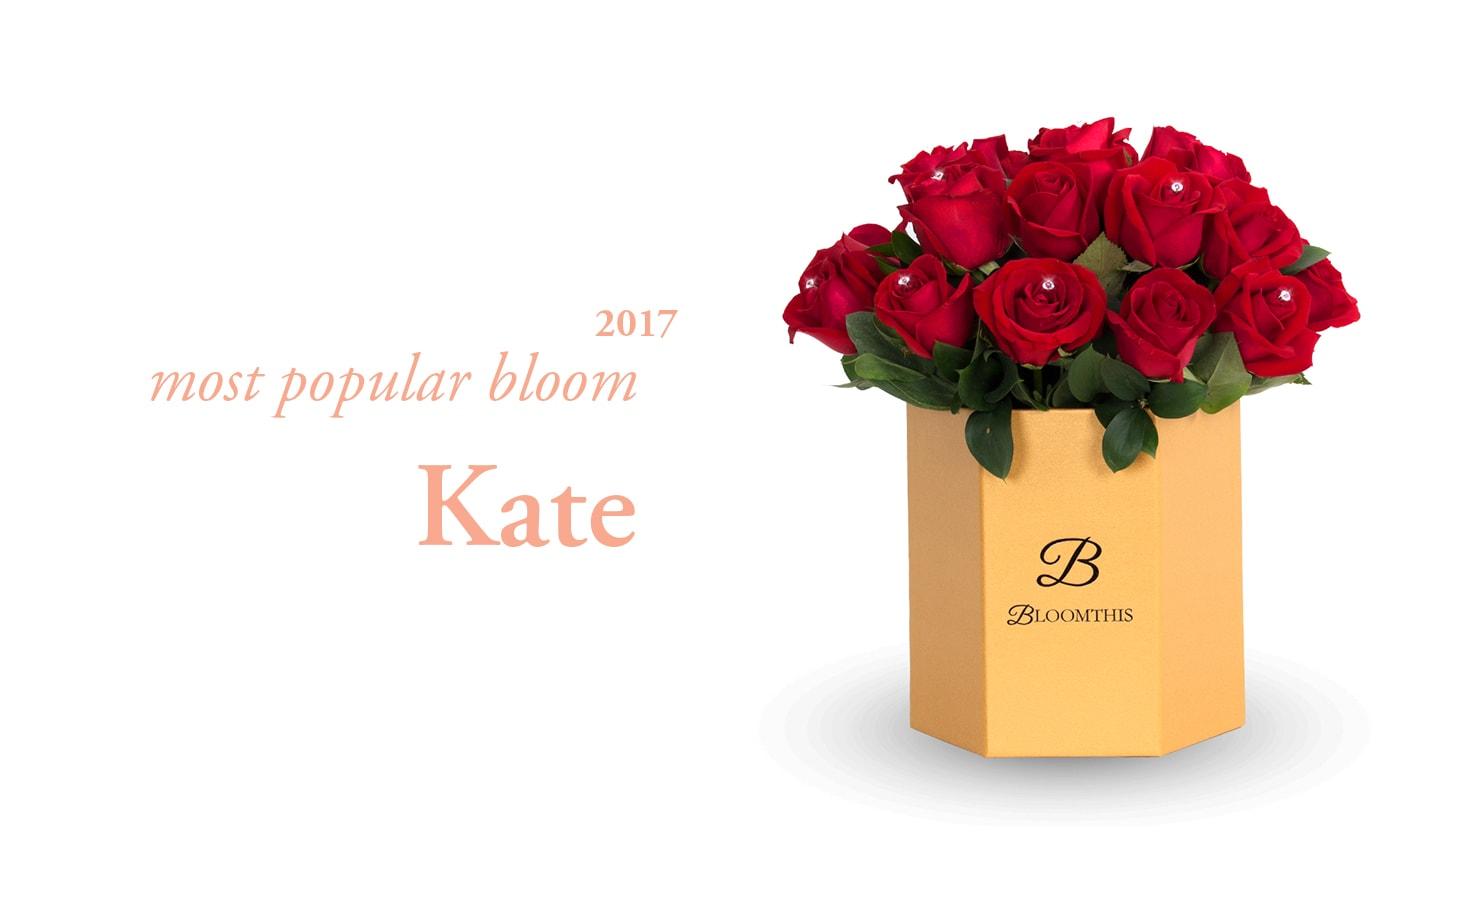 03-most-popular-bloom-kate